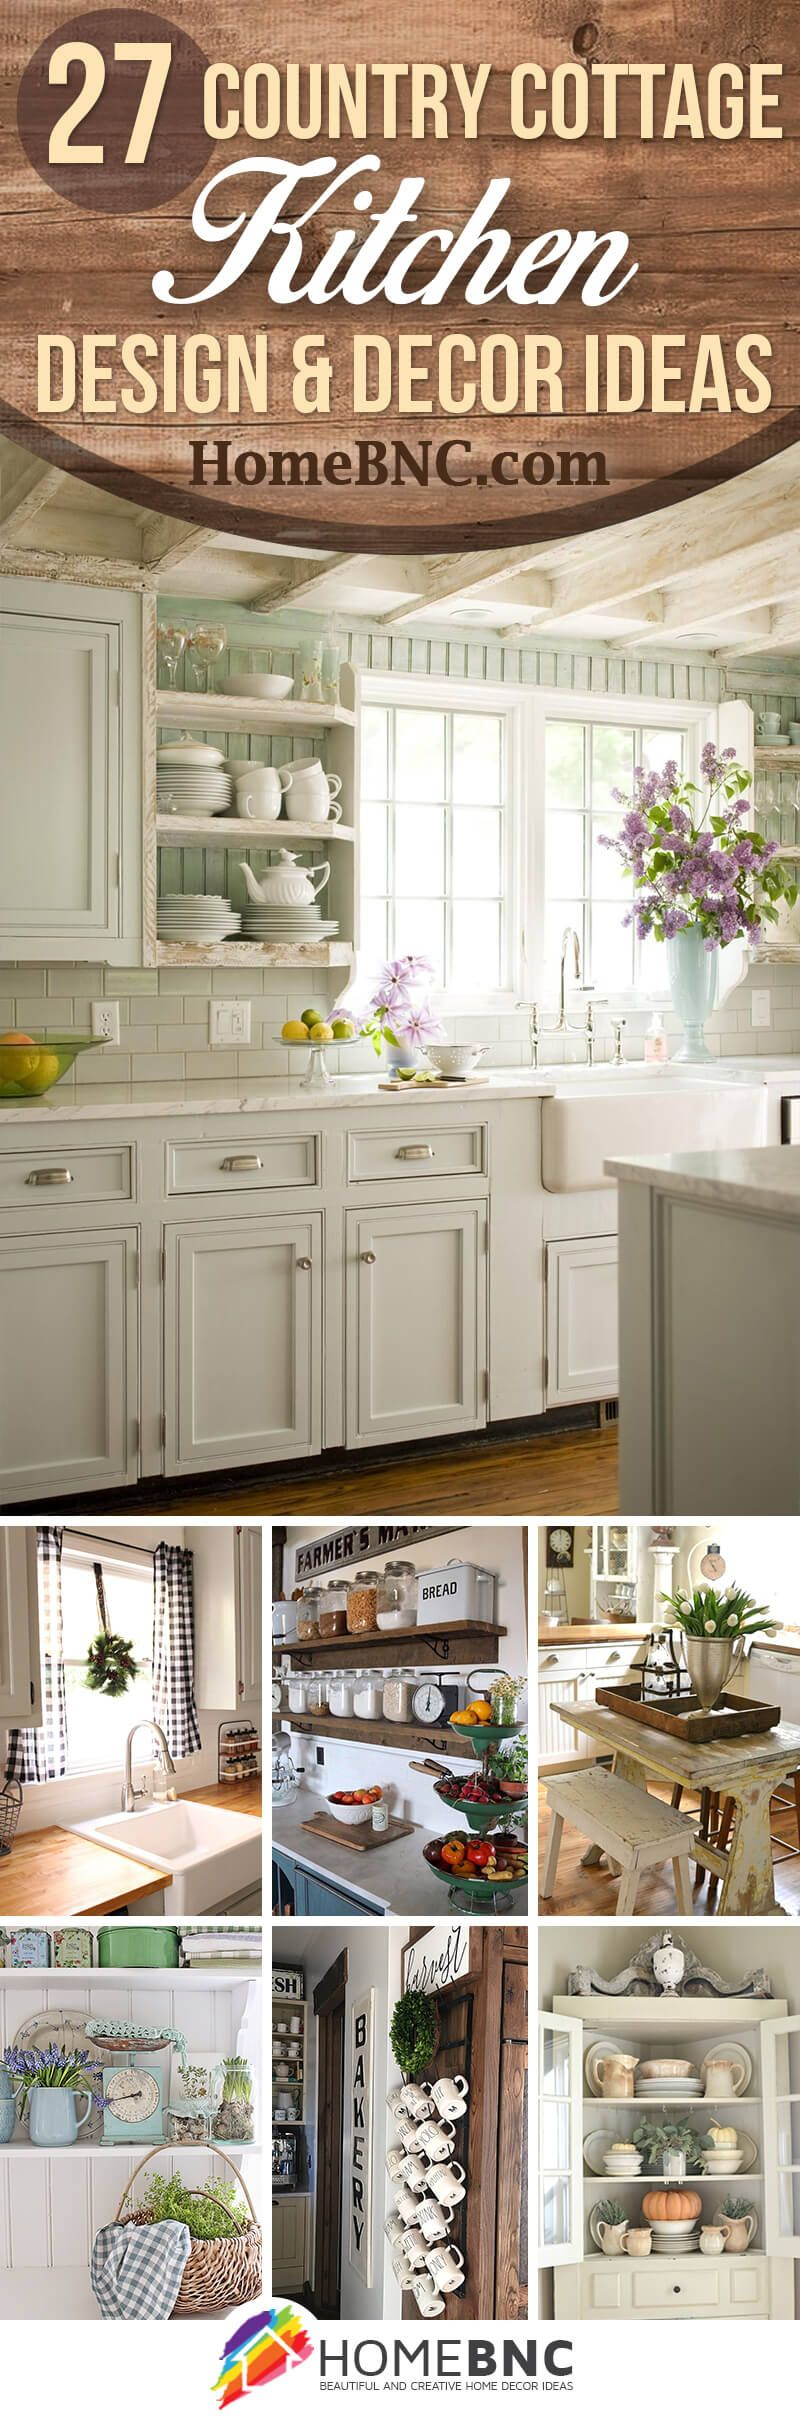 27 Country Cottage Style Kitchen Decor Ideas To Make You Fall In Love With Your Kitchen Again Cottage Kitchen Decor Country Kitchen Decor Kitchen Design Decor